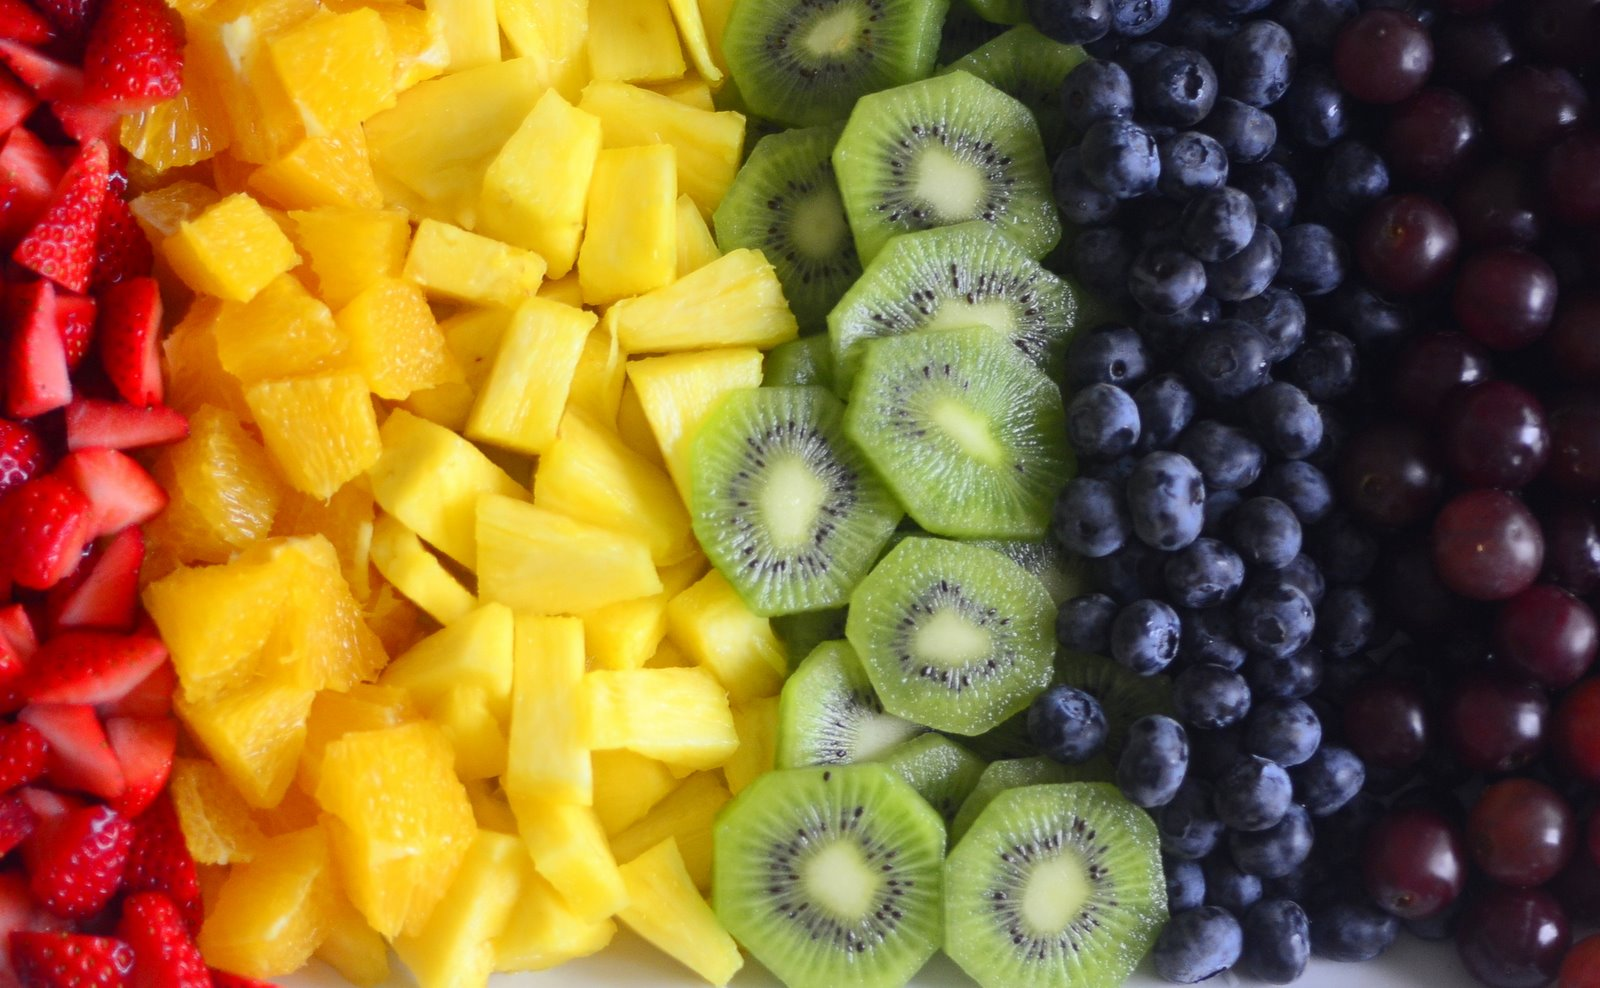 Is Fresh Fruit Good For Dogs